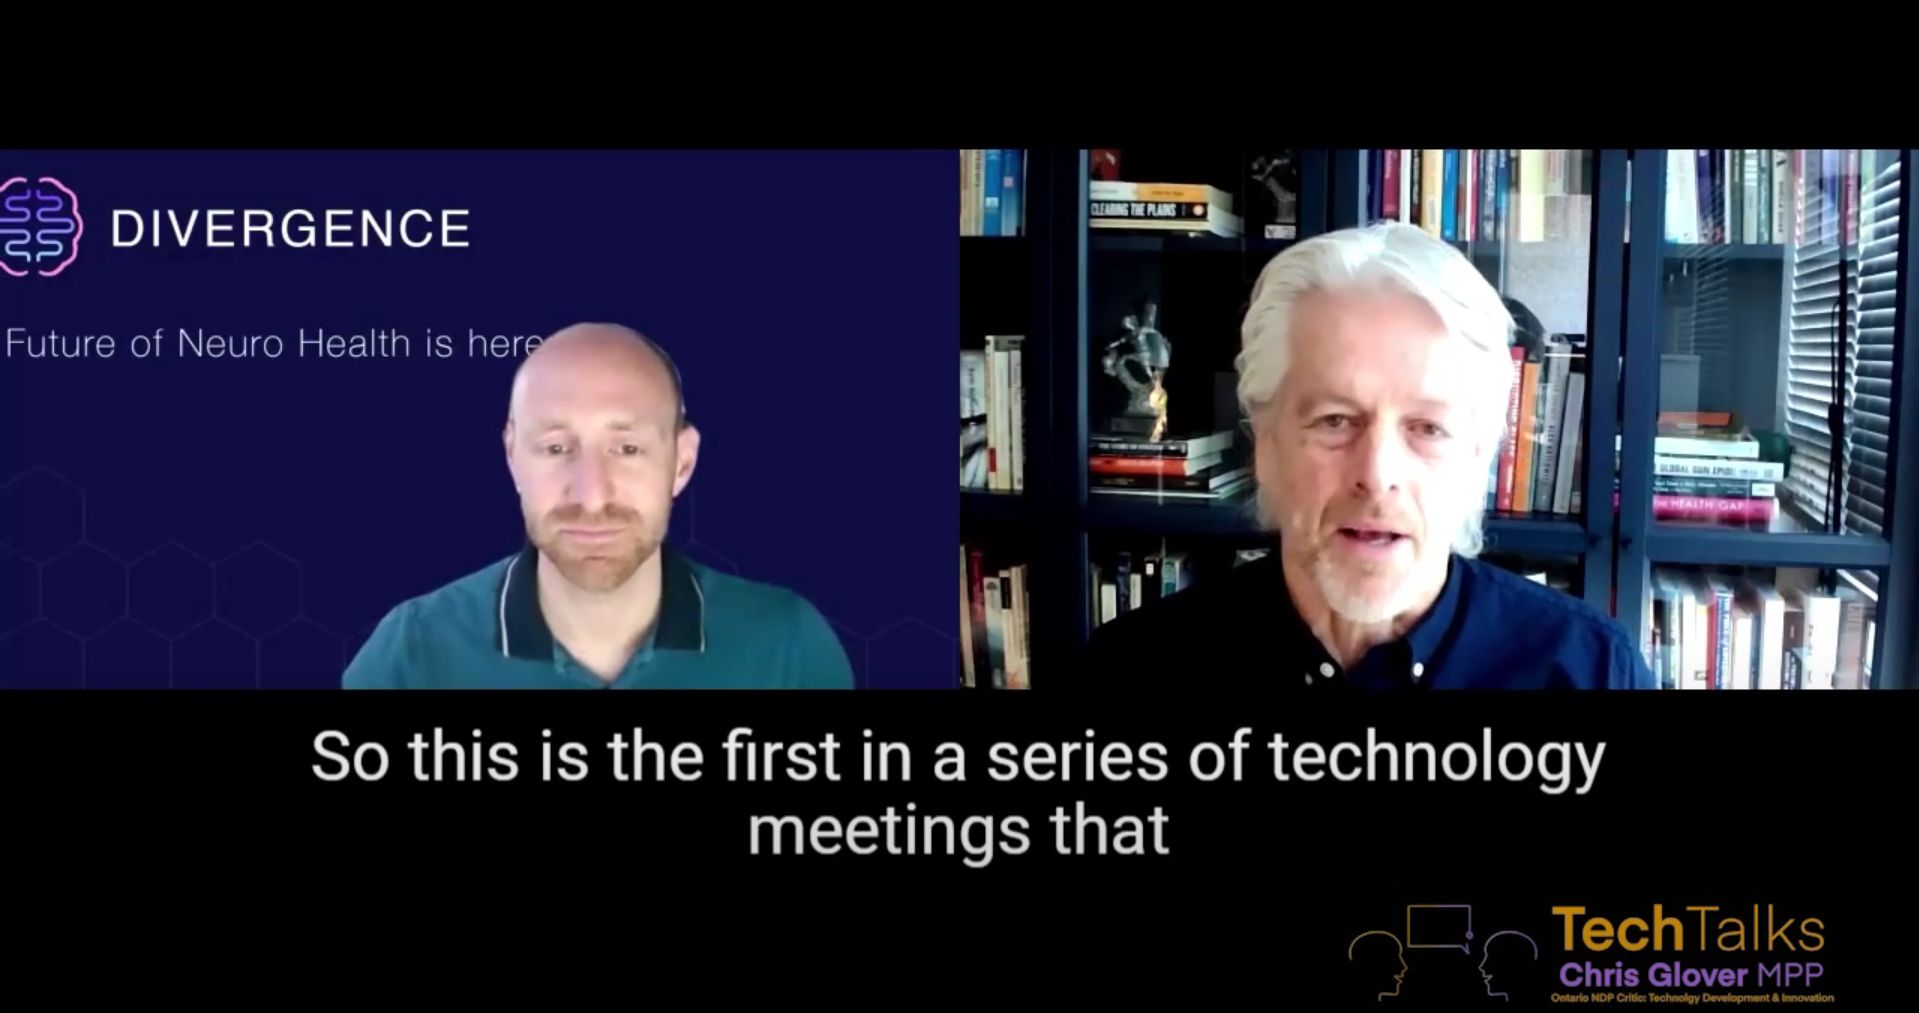 Divergence Appears with MPP and Ontario NDP Technology Development and Innovation Critic, Chris Glover, on Tech Talks